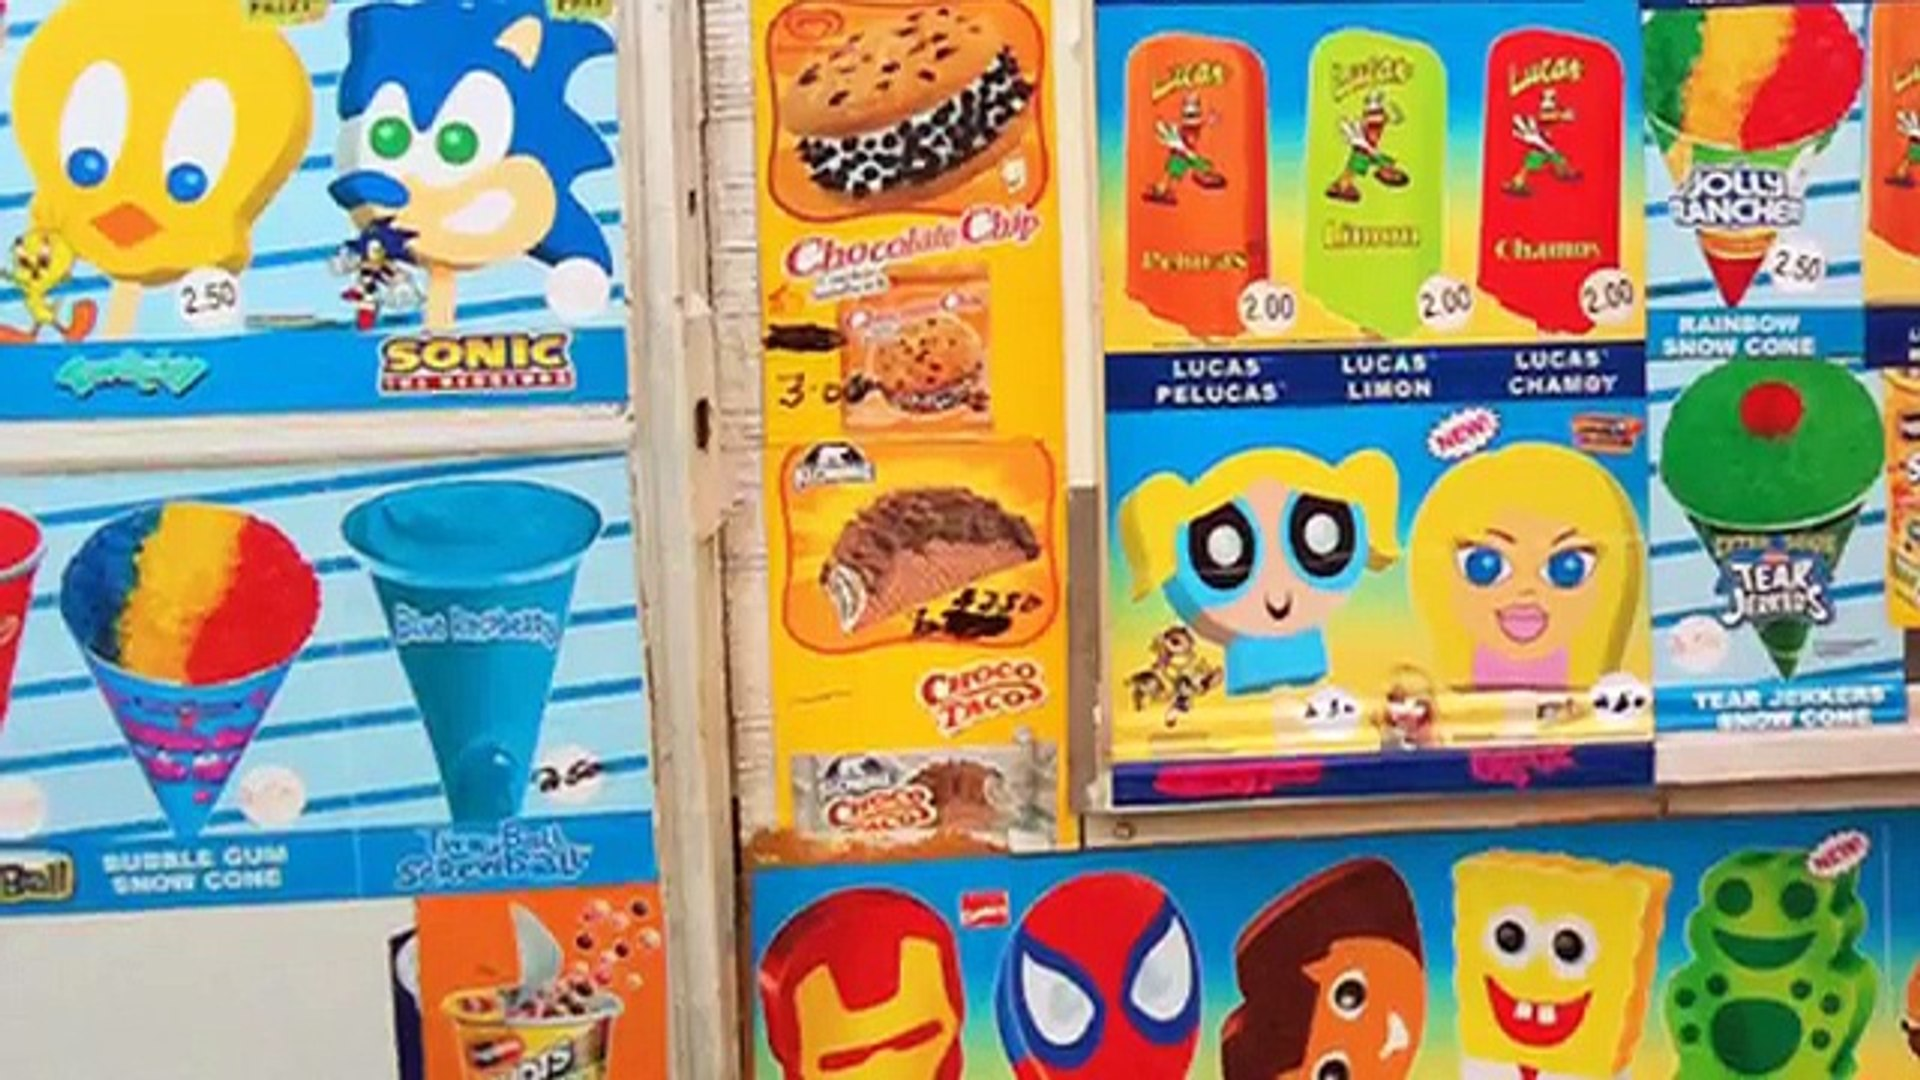 The Many Releases Of The Sonic The Hedgehog Ice Cream Bar W Gumball Eyes Dailymotion Video